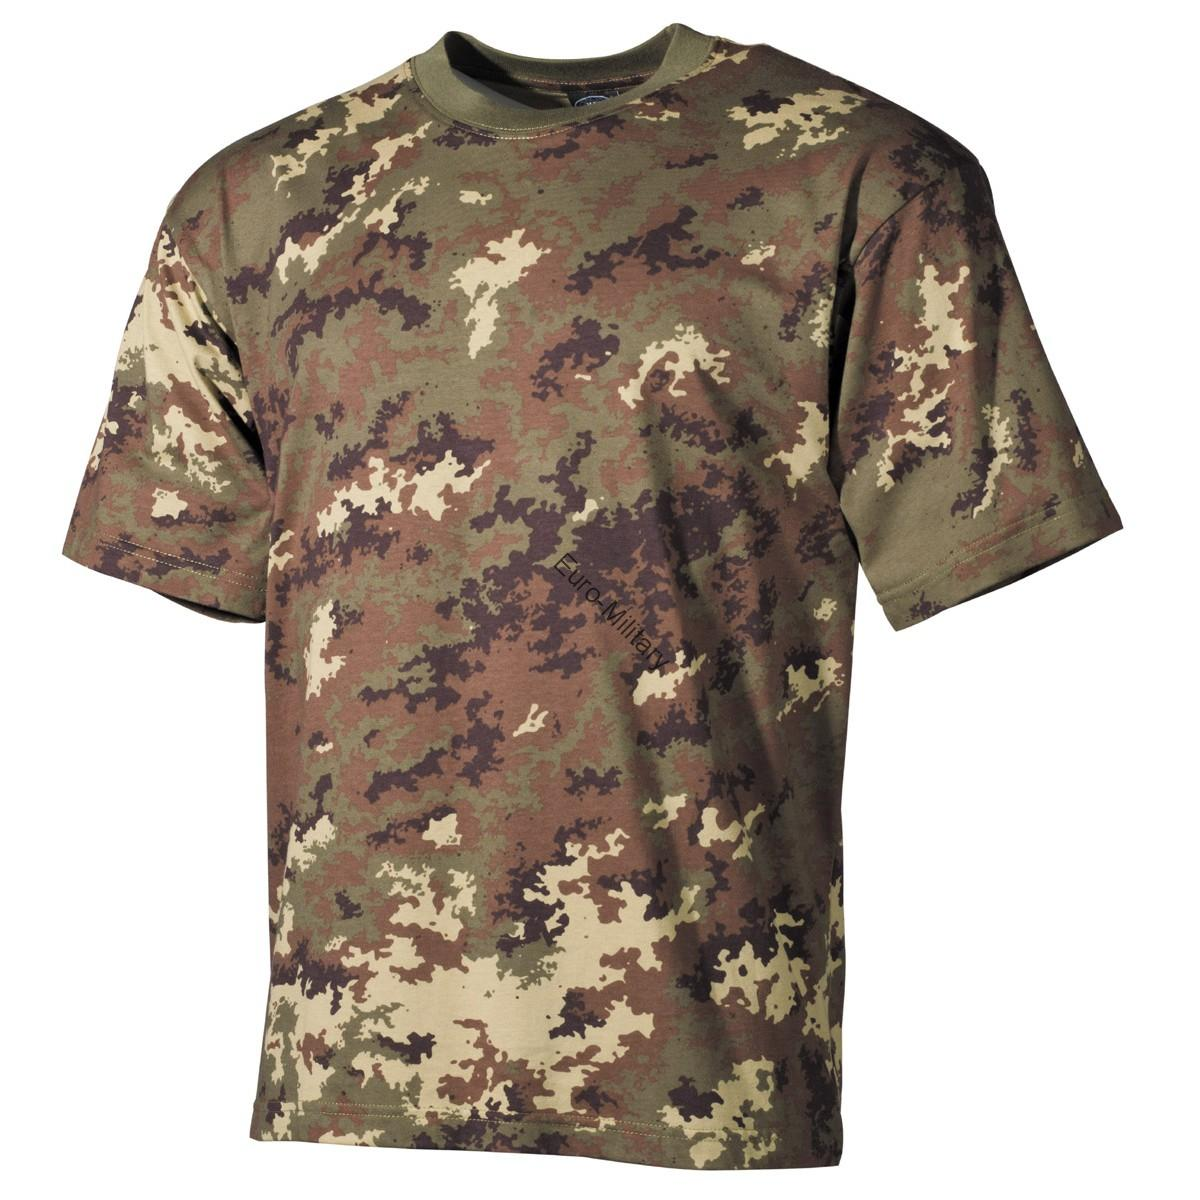 Vegetato Camo T-Shirt - Short Sleeve